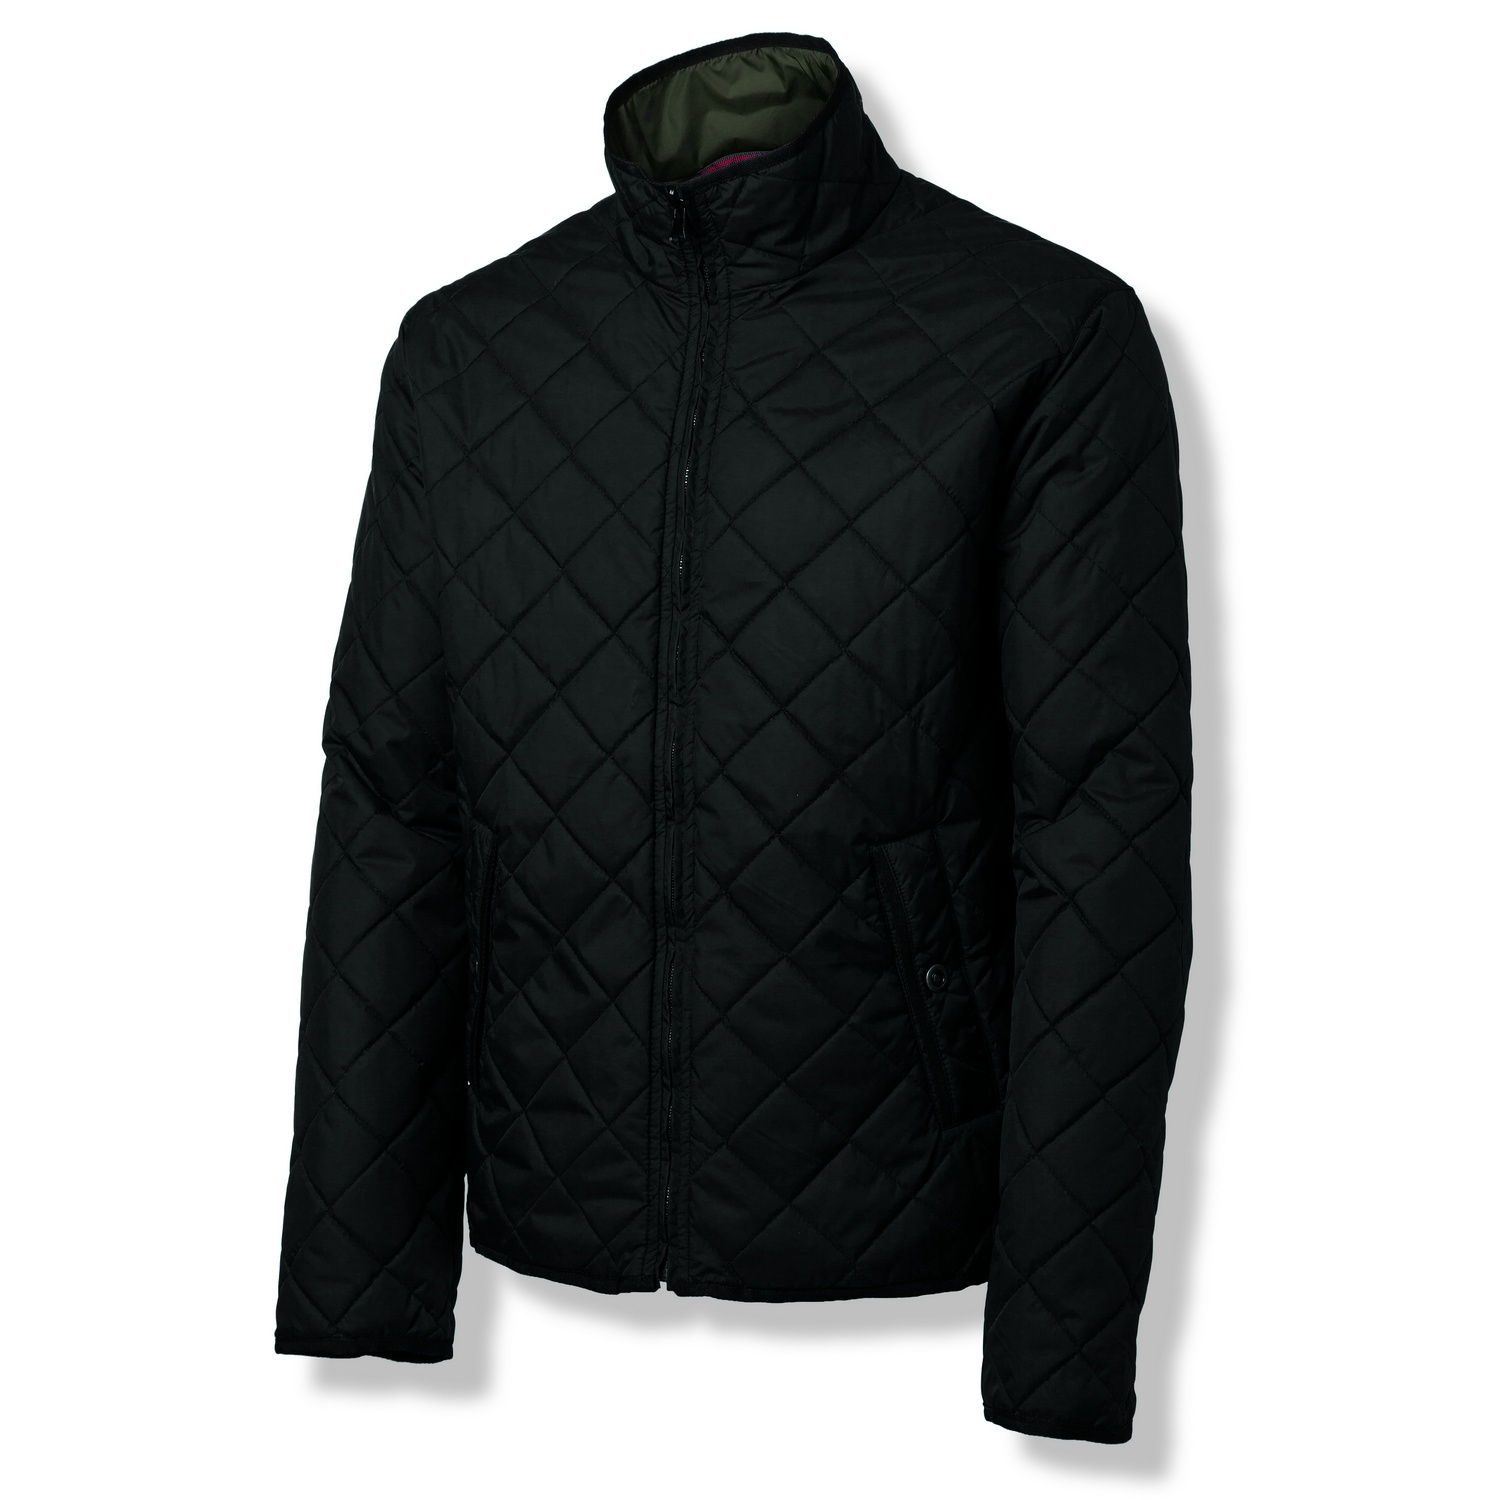 Shop for men's The North Face jackets and coats designed with the athlete in mind combining style, comfort and performance like never before. View All (16) Lightweight weather-ready jackets to keep you covered on the commute. Quickview. URBAN NAVY WOODLAND FLORAL PRINT. TNF BLACK () MEN'S FANORAK. $